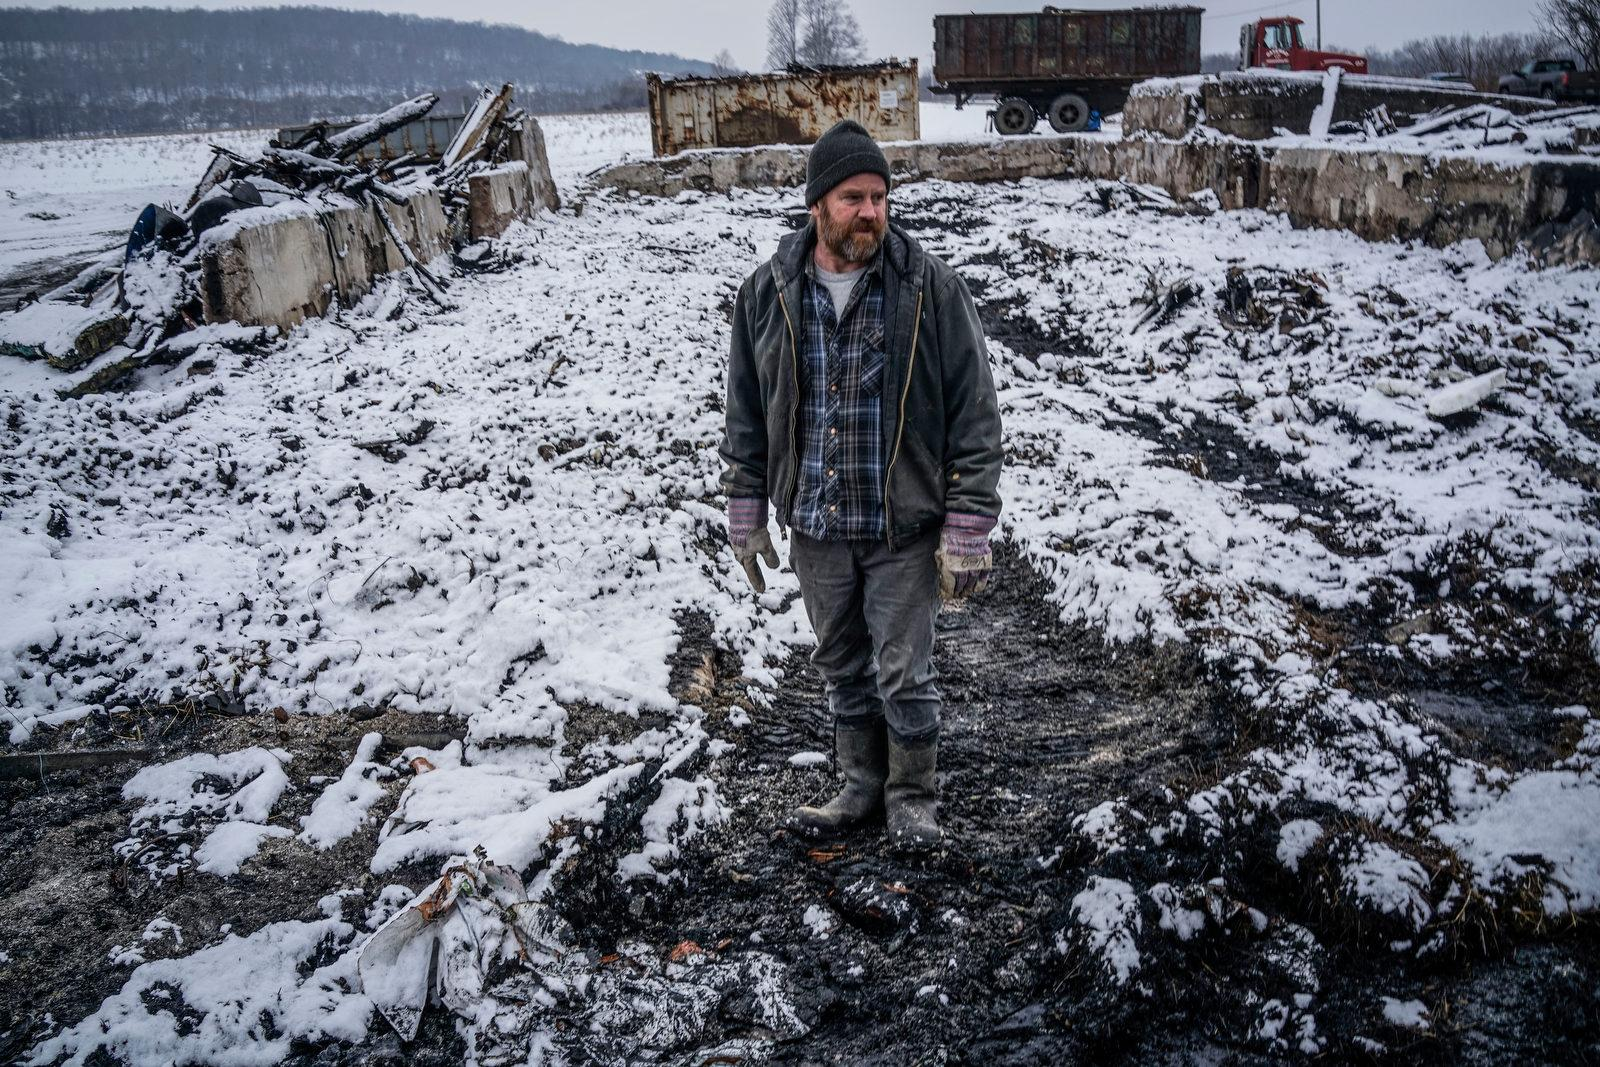 Sean Kirst: After barn fire, Little Valley farmers find 'kindness everywhere'